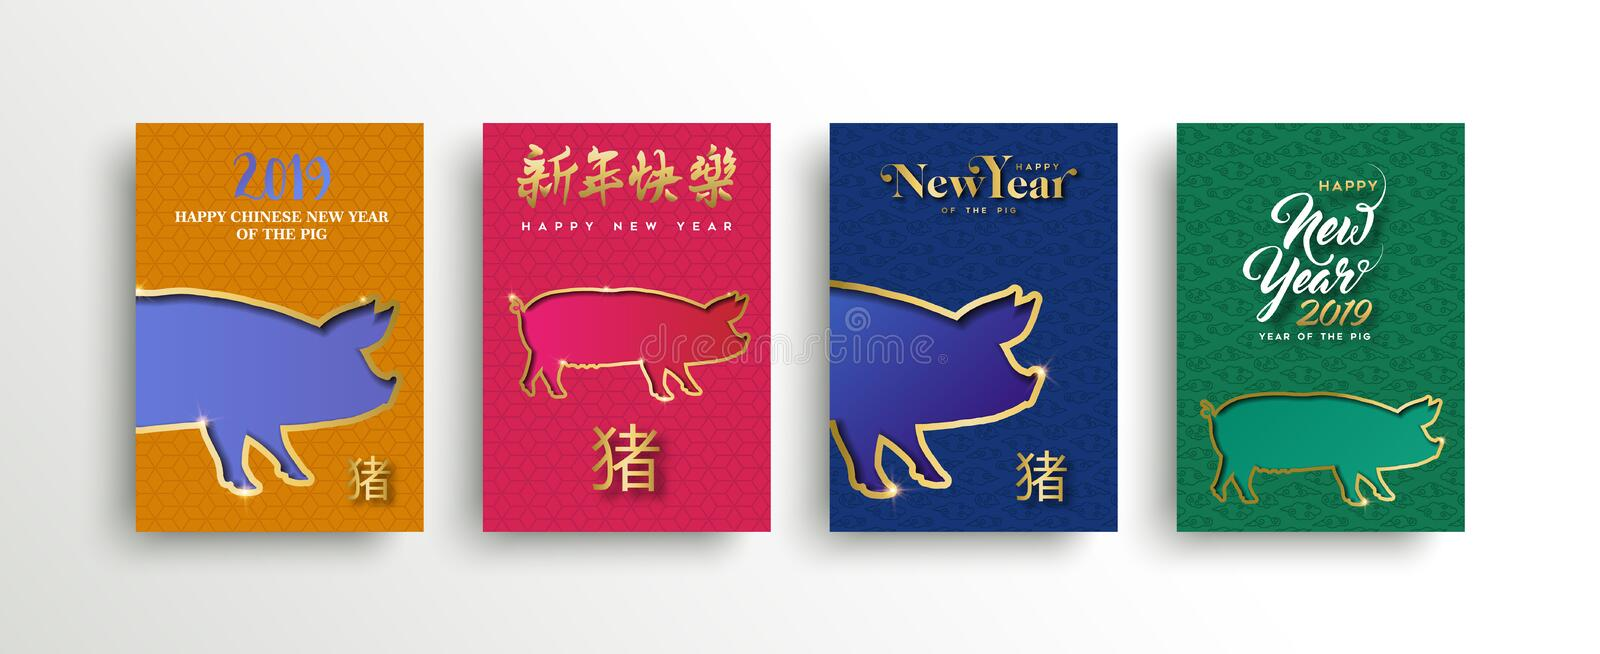 Chinese New Year 2019 multicolor pig card set. Chinese New Year 2019 greeting card with colorful illustration of hog on asian pattern background. Includes stock illustration